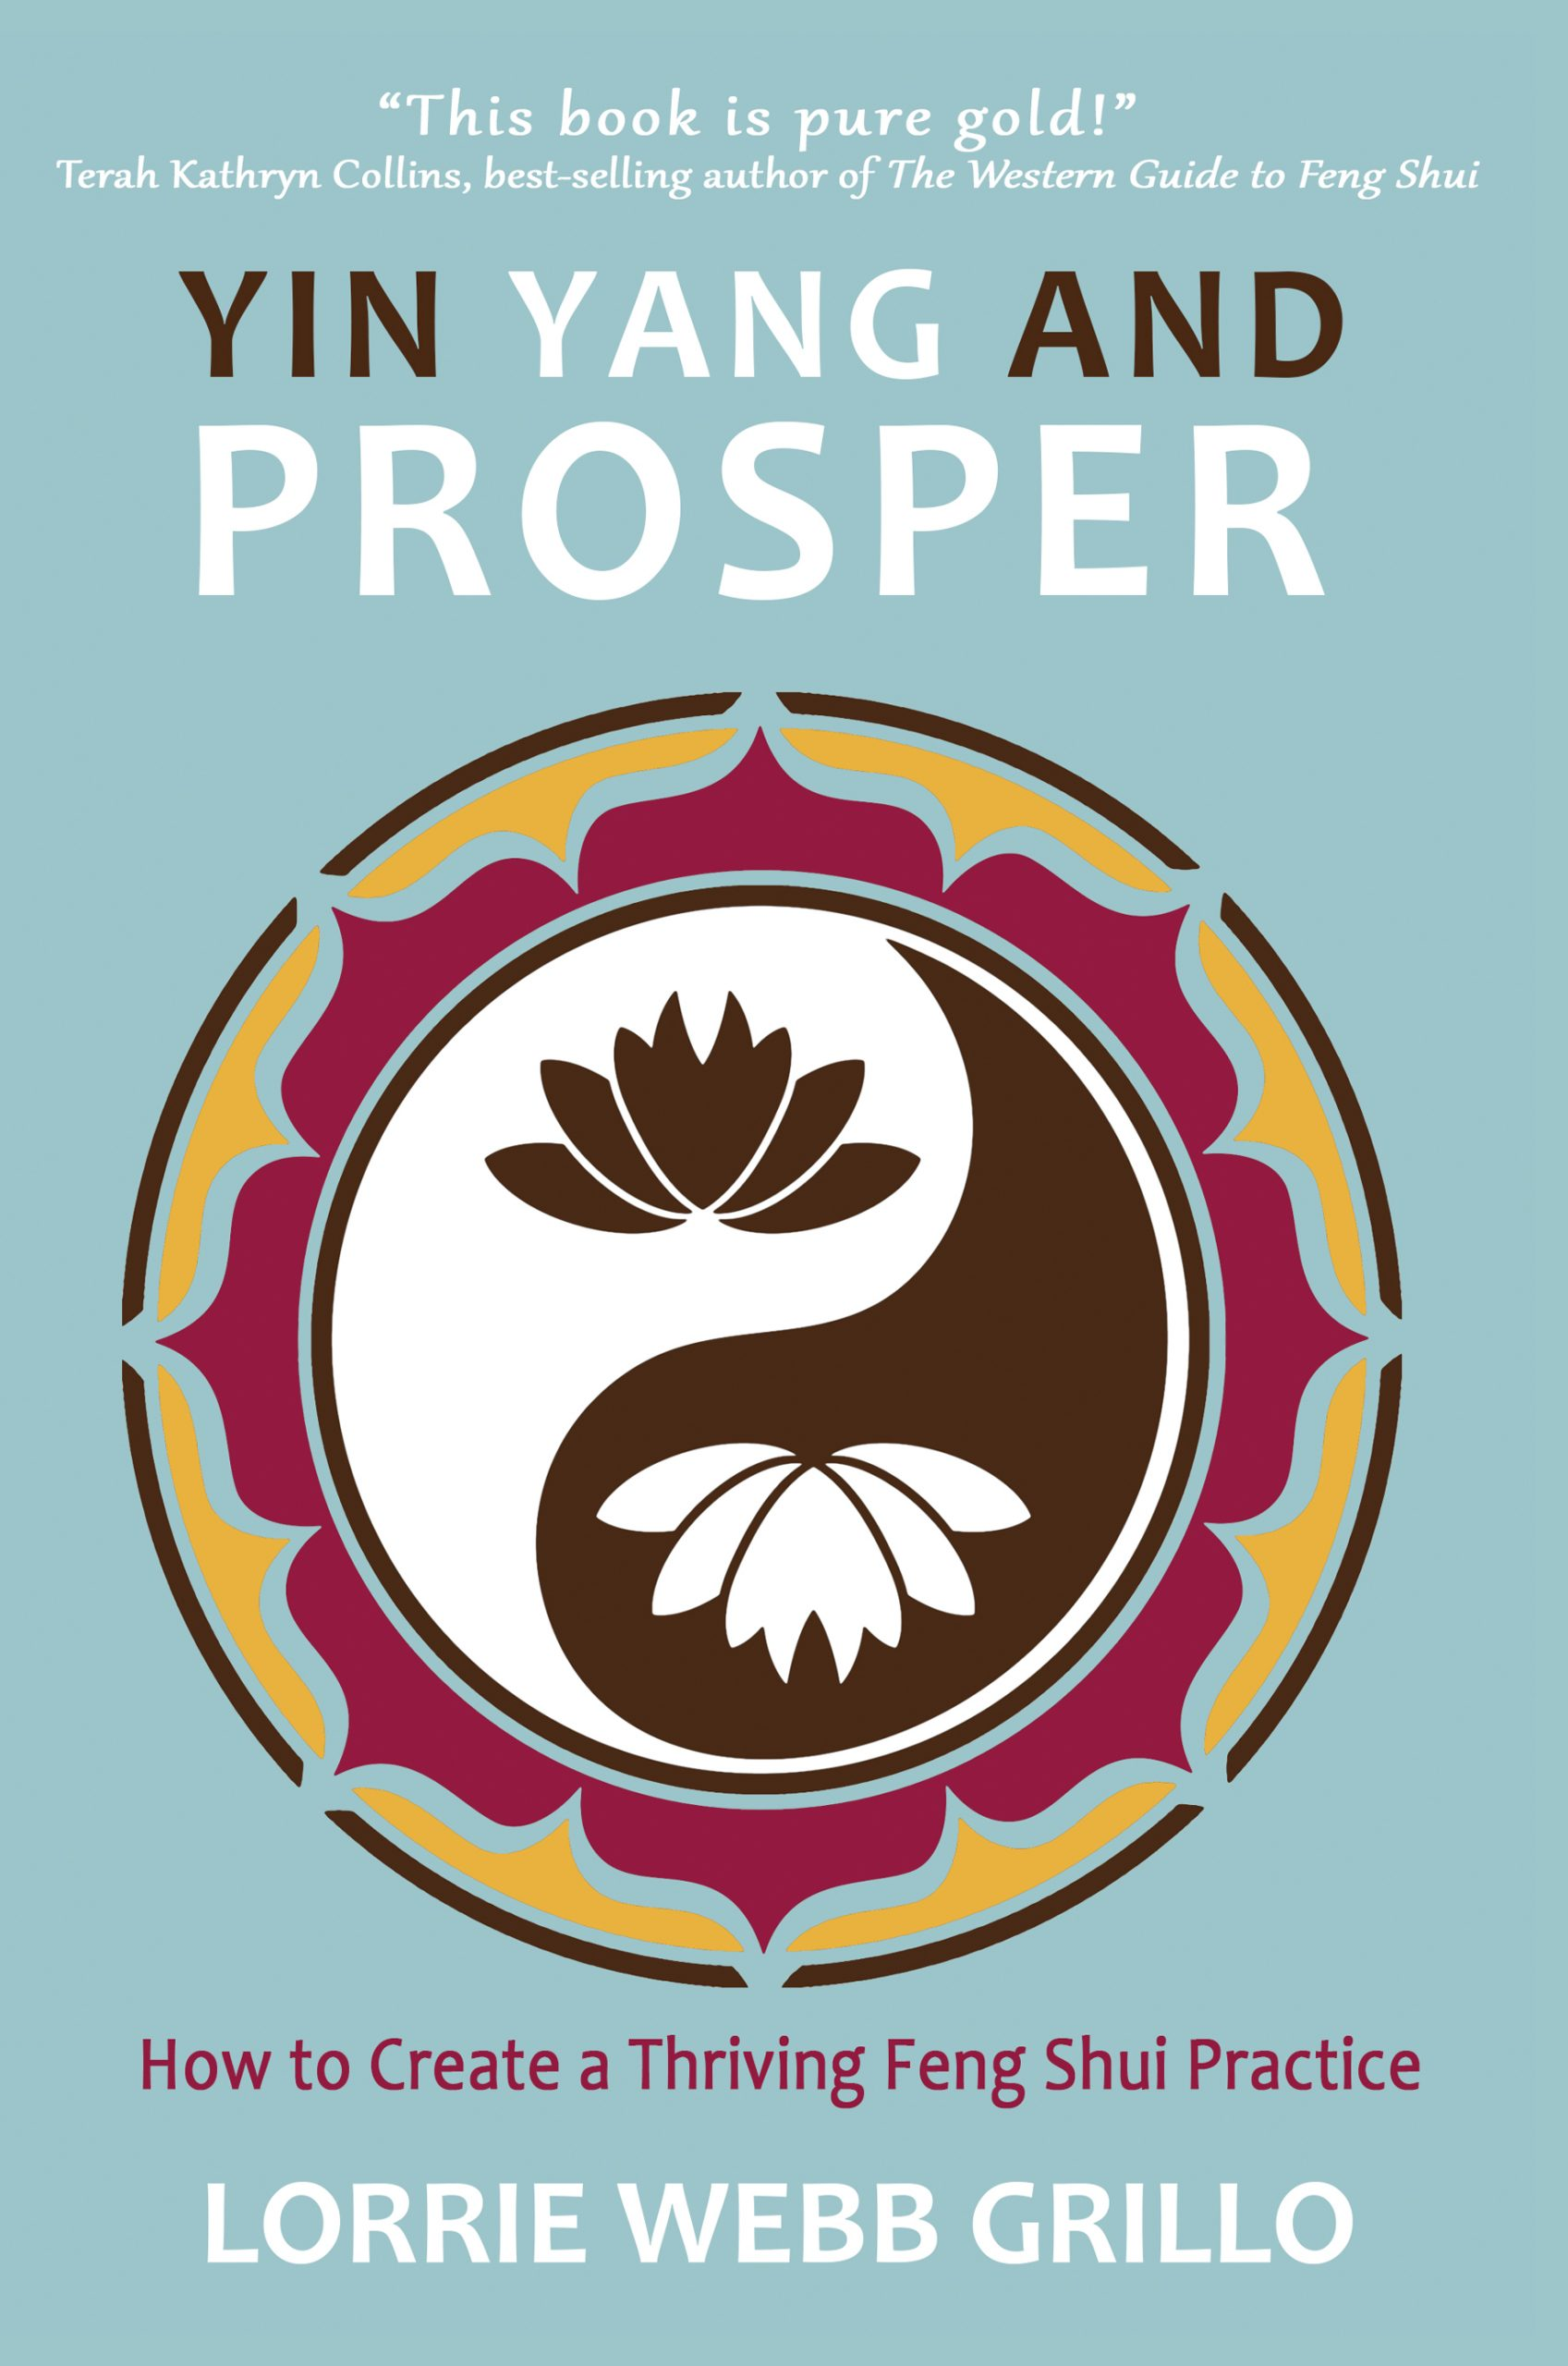 Front cover of Yin Yang and Prosper